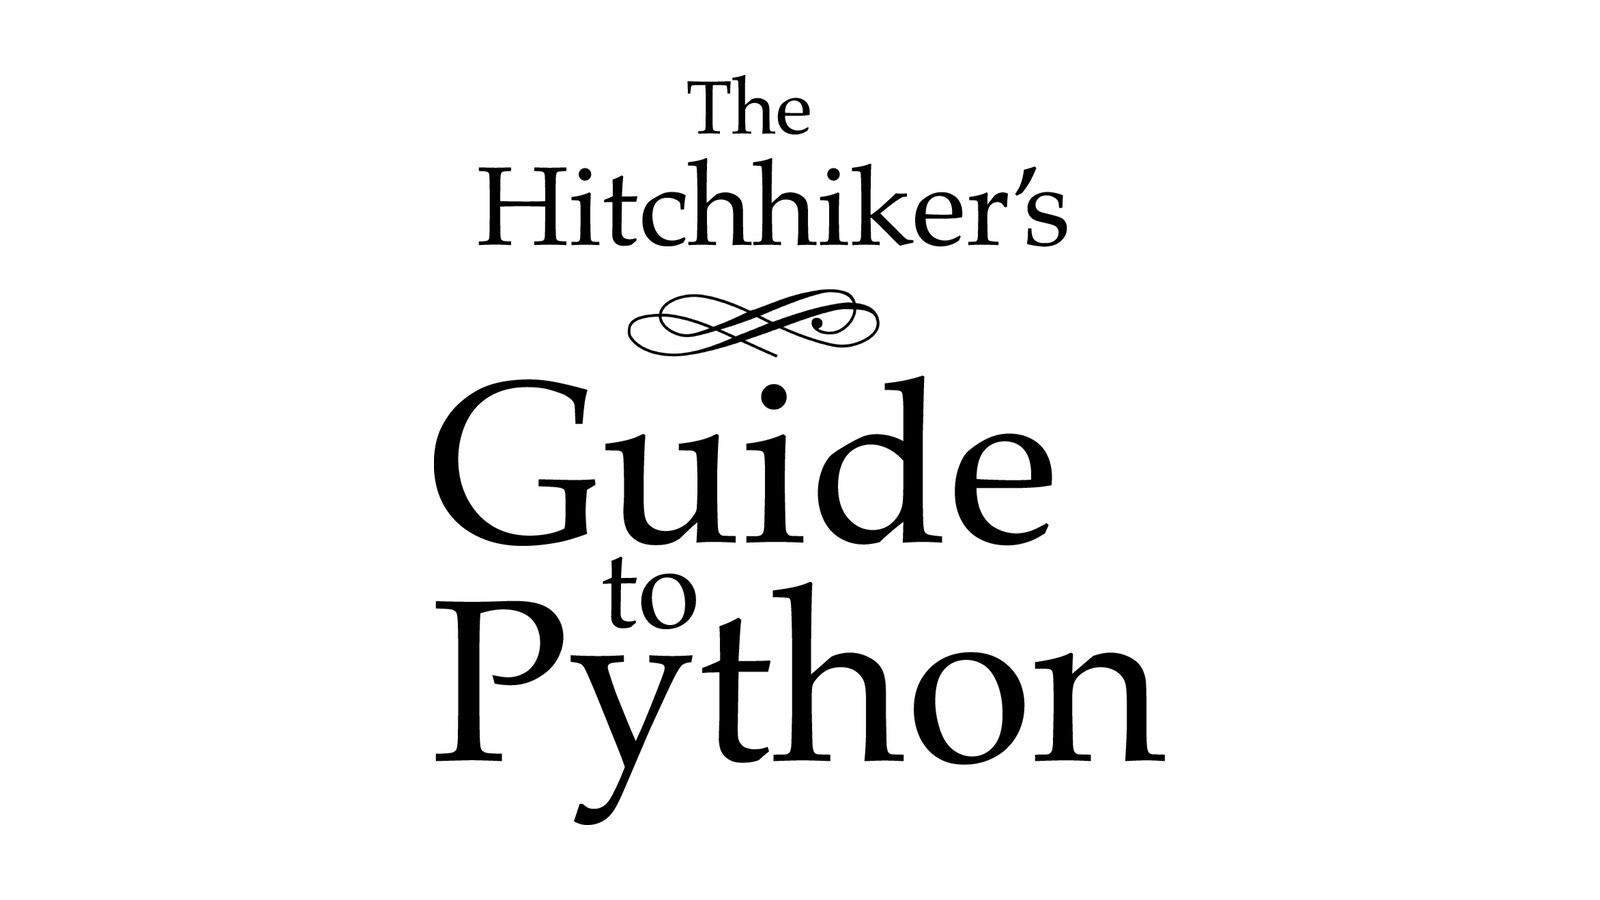 JSON — The Hitchhiker's Guide to Python